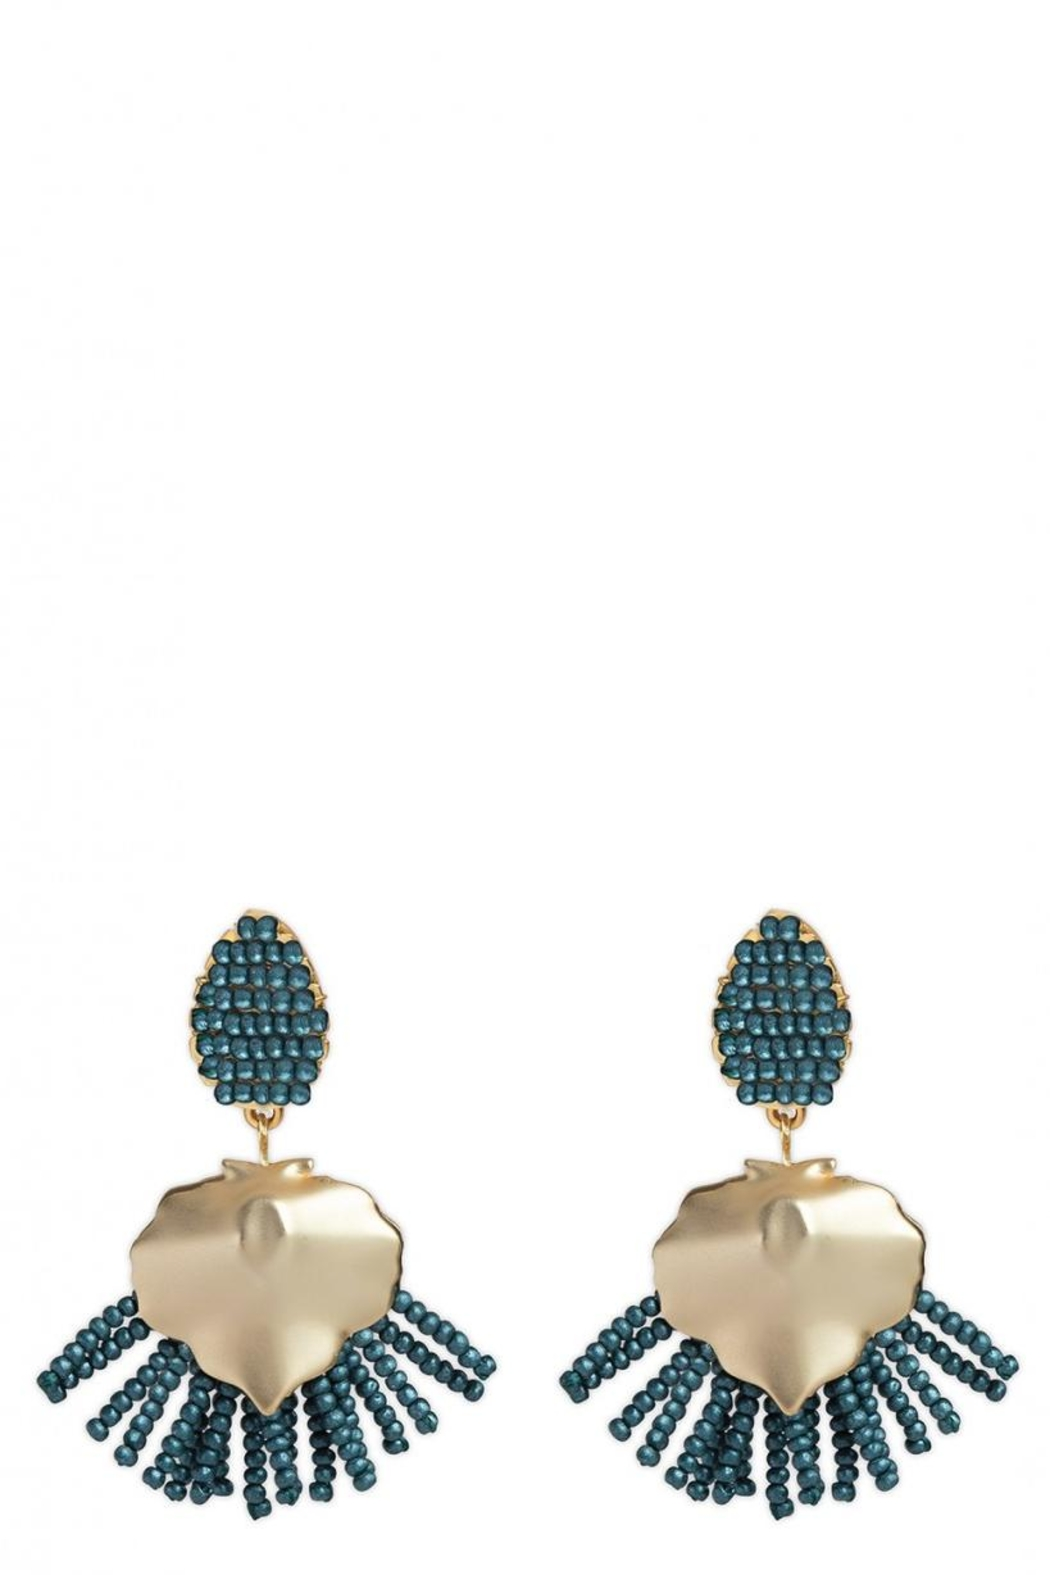 Spartina 449 Beaded Fringe Earrings - Main Image